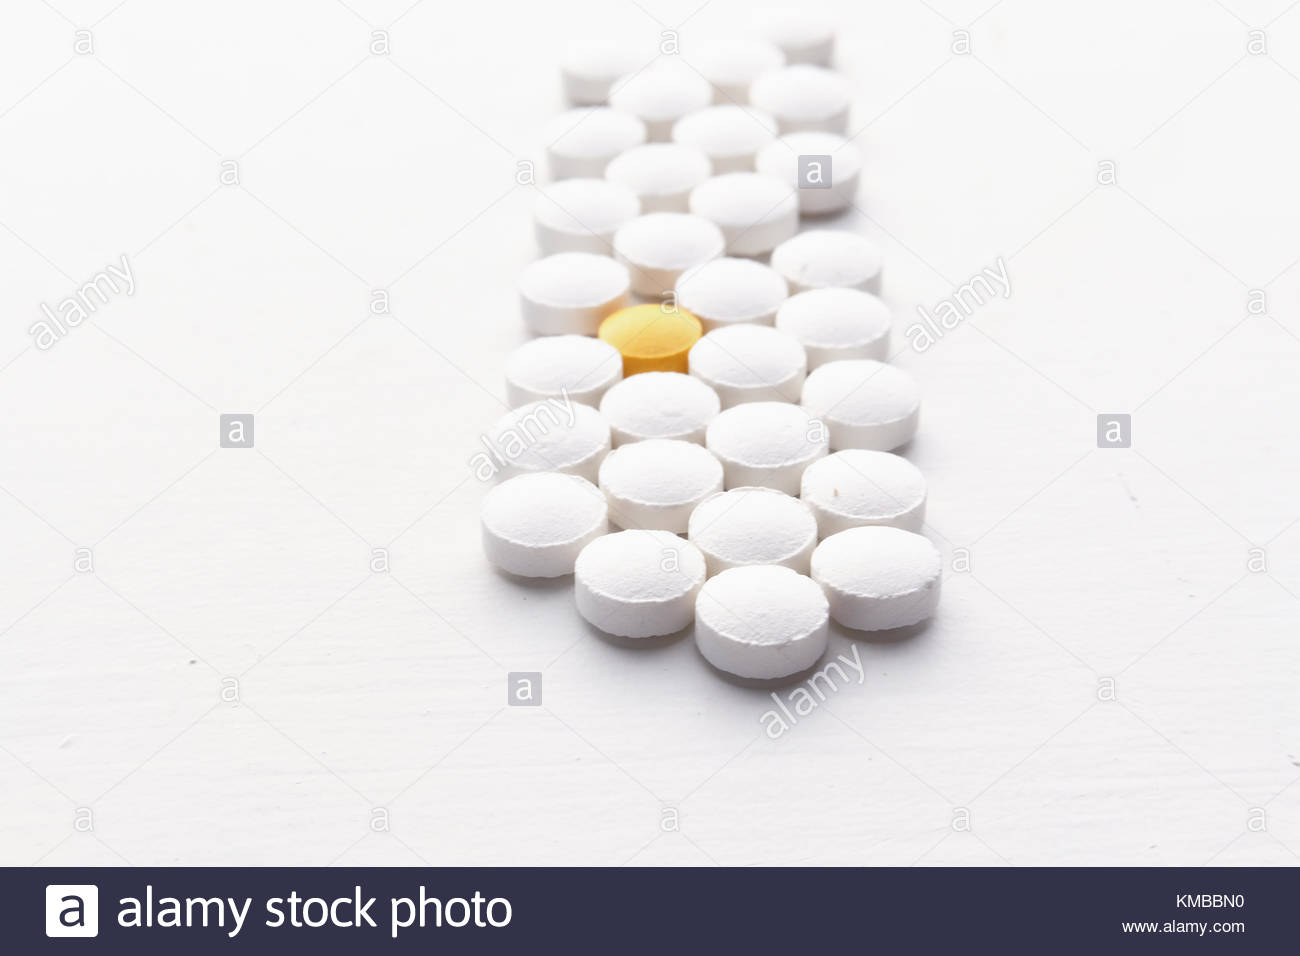 contraceptive pills pharmacy stock photos amp contraceptive